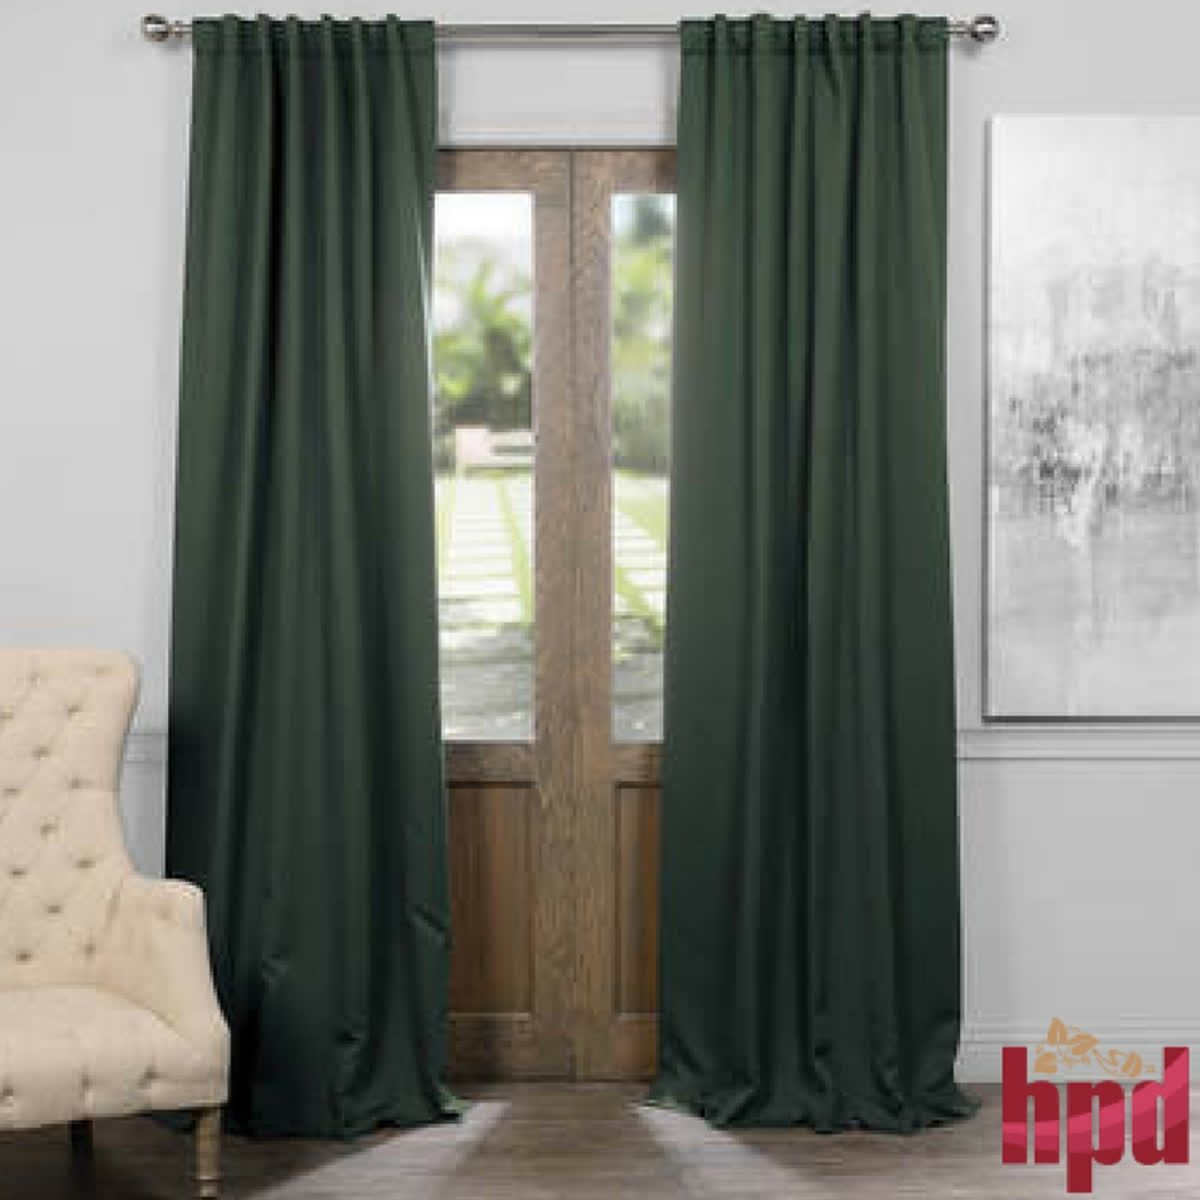 Creative window coverings  as brisk temperatures approach youure going to need to bring out